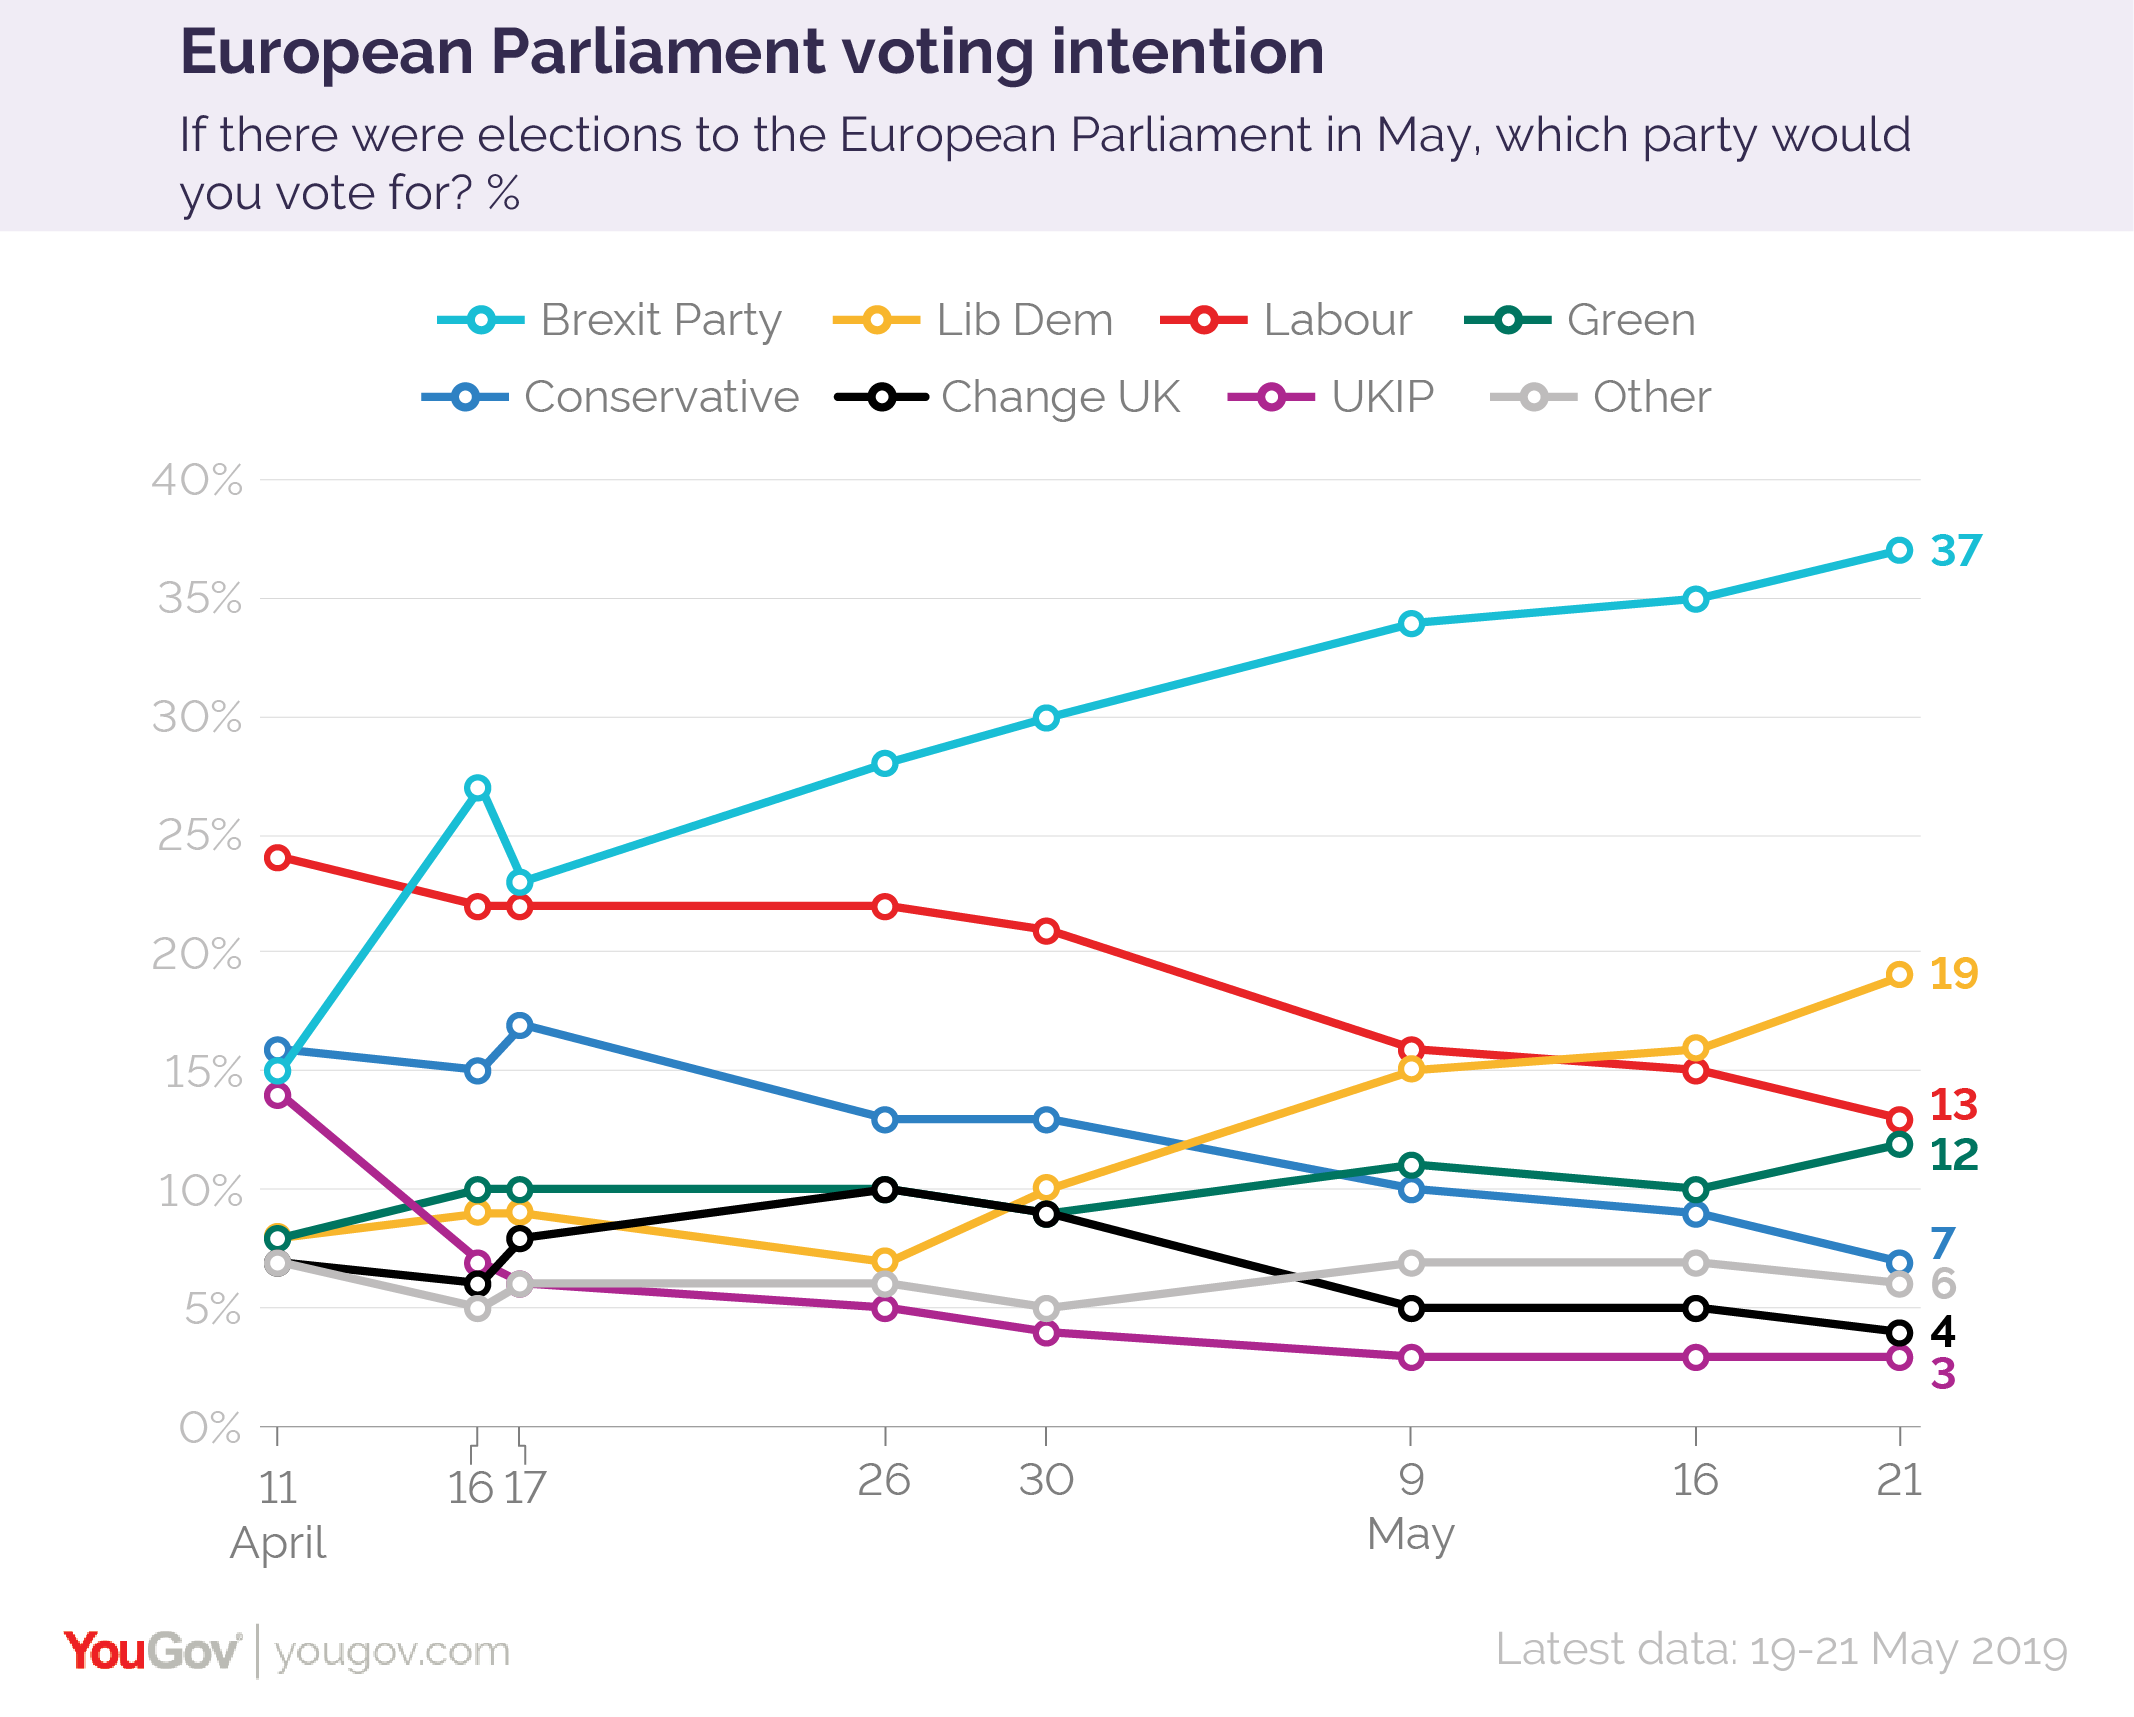 Opinion polling for the 2019 European Parliament election in the United Kingdom